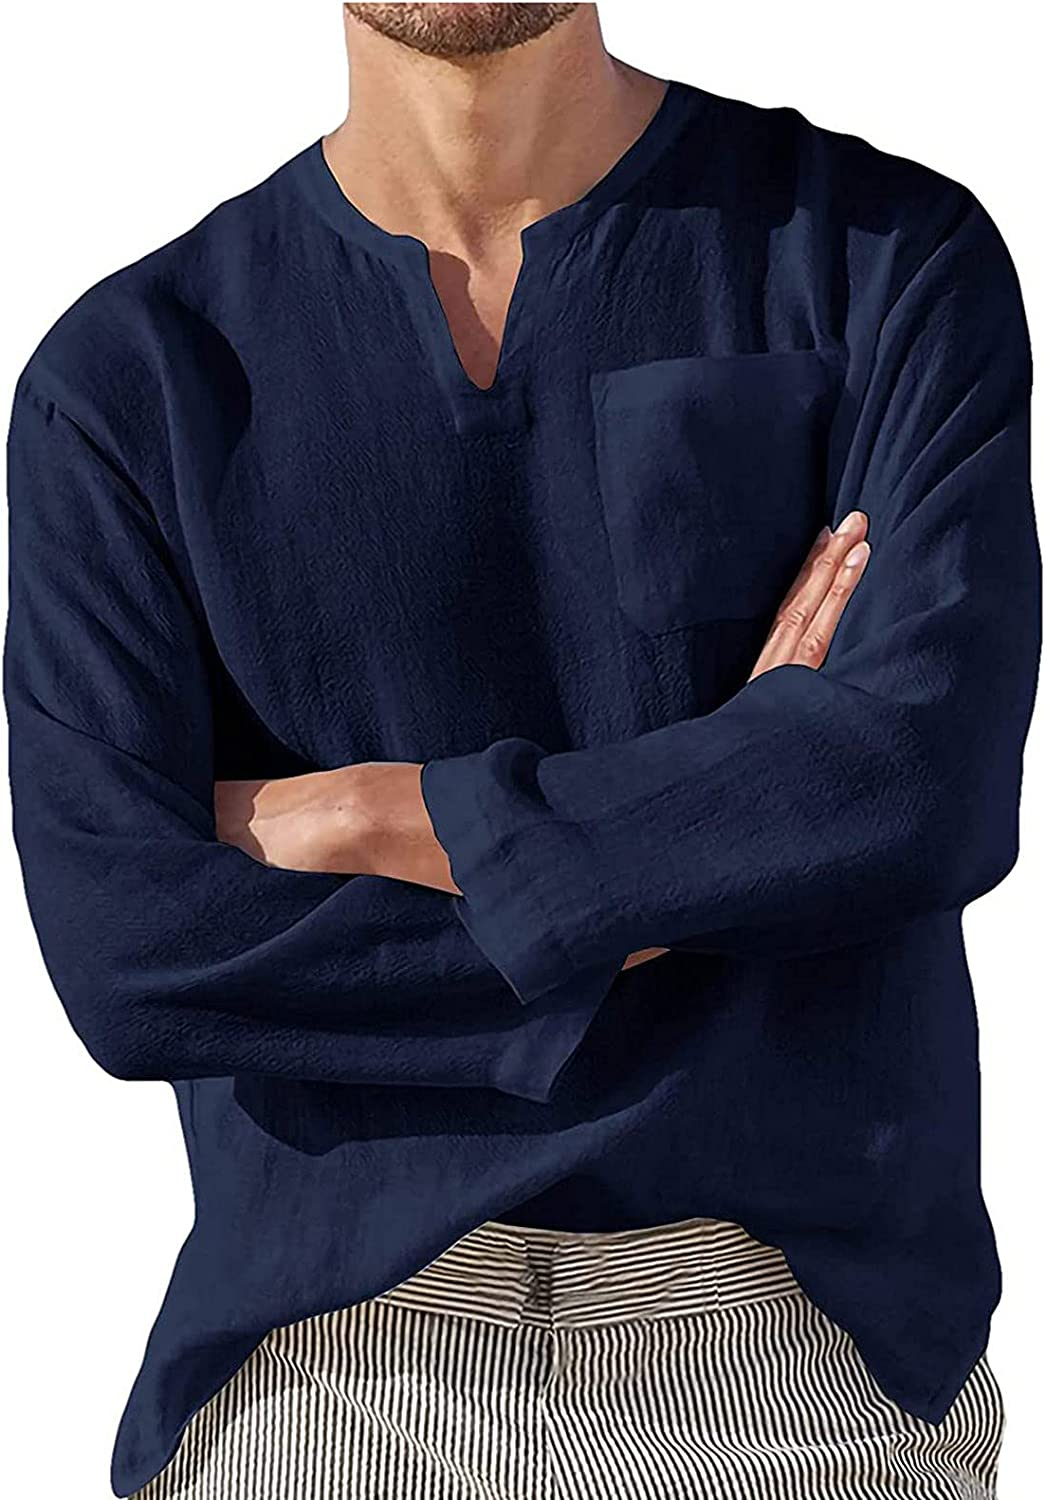 CofeeMO Bravetoshop Men's Baggy Cotton Linen Henley Shirts Casual Loose Fit V Neck Long Sleeve Tops